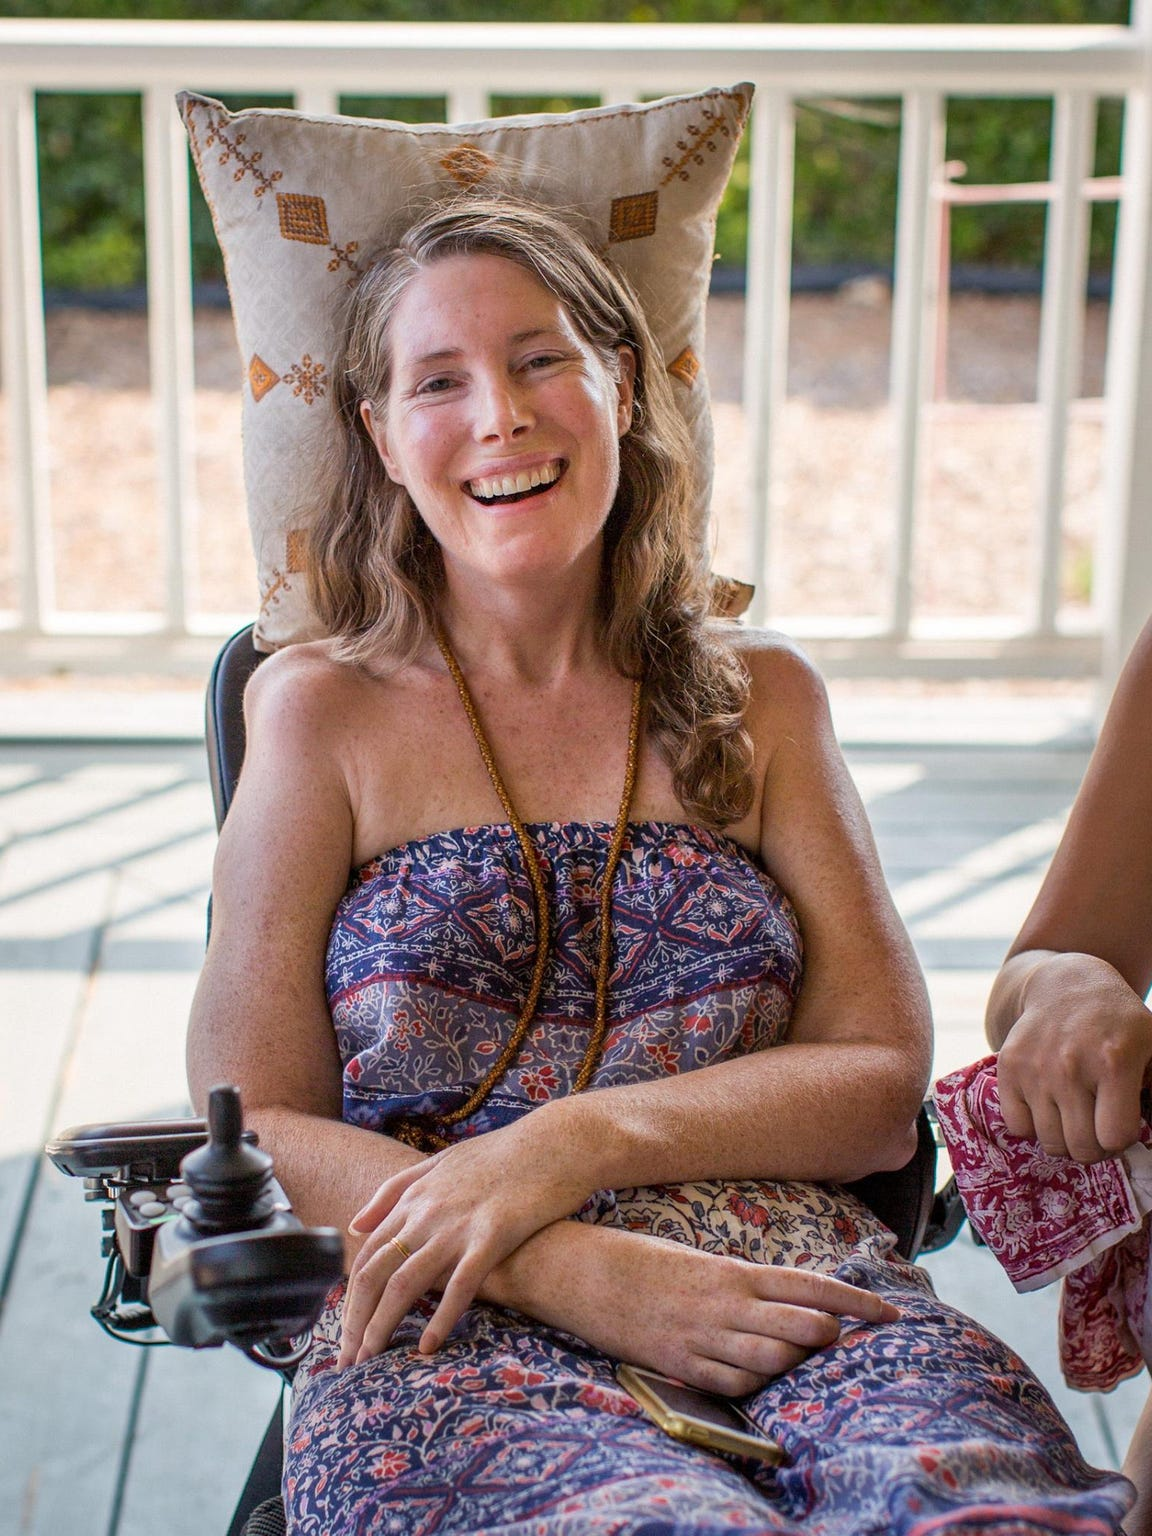 Betsy Davis, 41, ended her life on July 24 after a